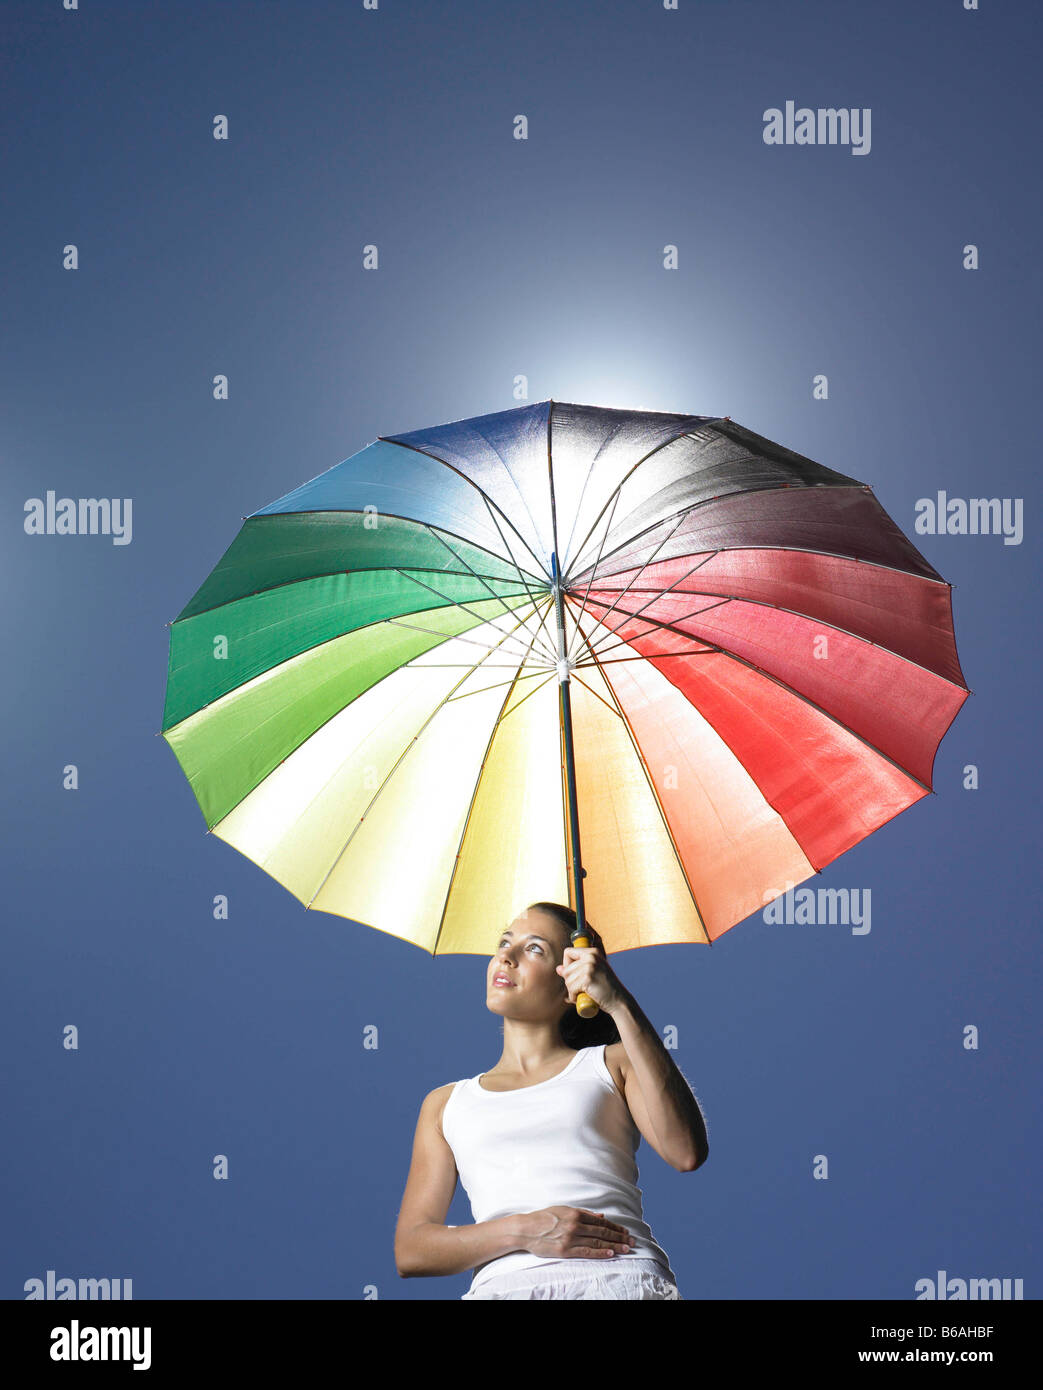 Girl with sun parasol - Stock Image